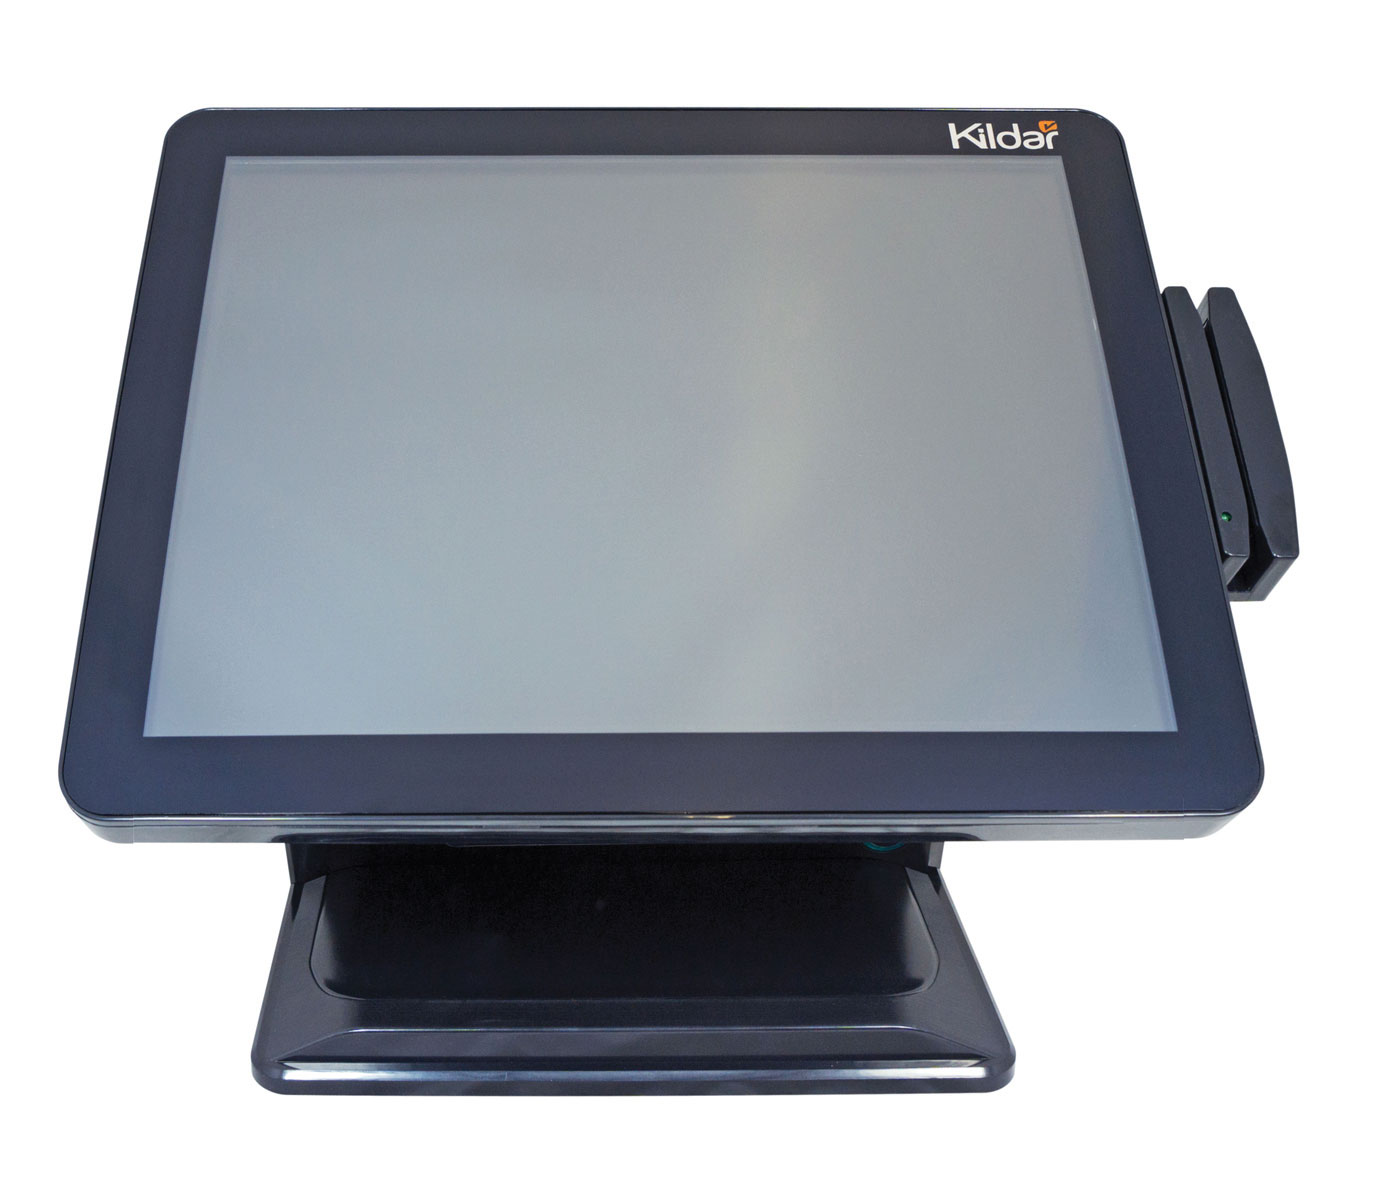 KILDAR - POS Touch Screen Terminals - DataTouch T1573 - Front